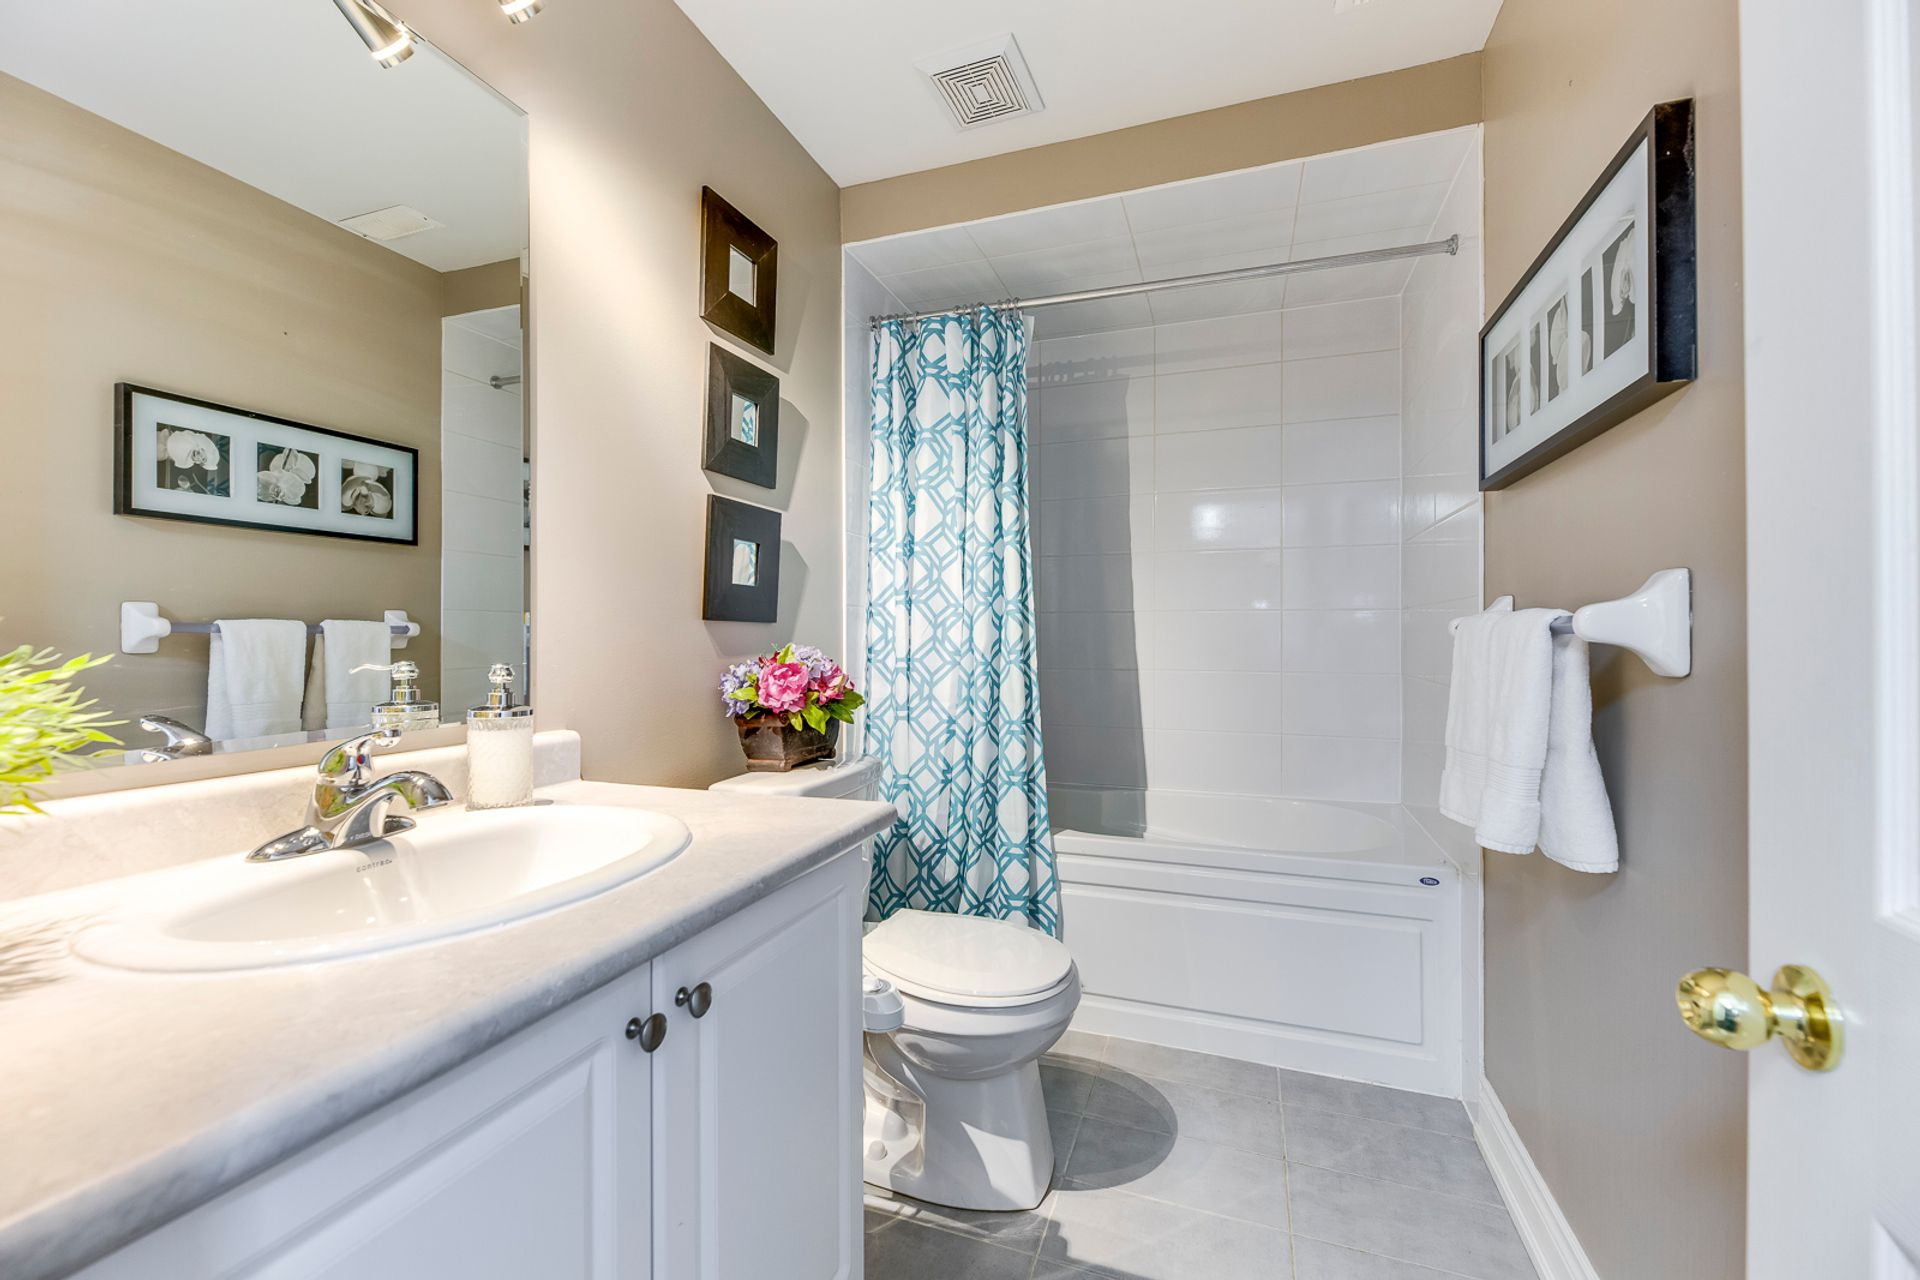 mls-63 at 5480 Meadowcrest Avenue, Churchill Meadows, Mississauga